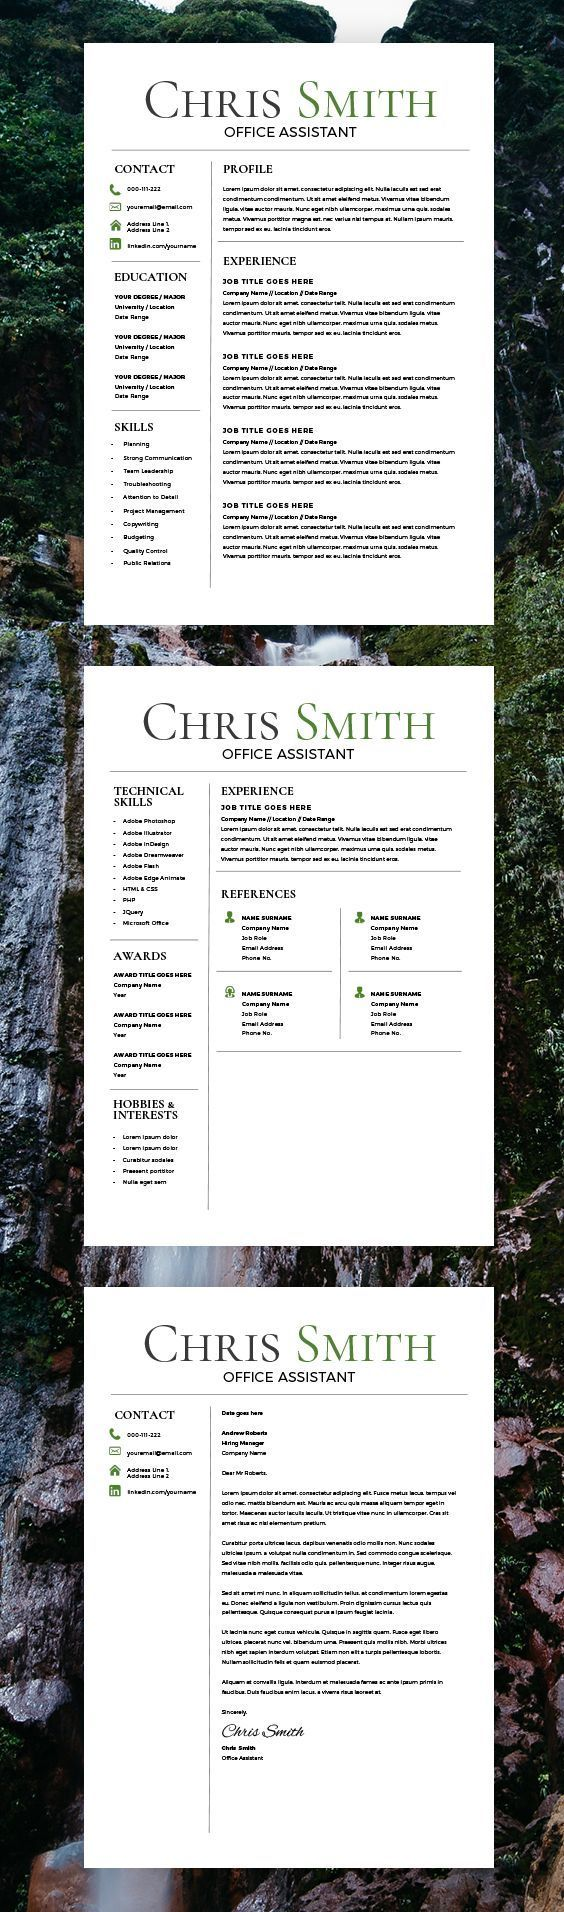 Resume Template Word Mac Resume For Marketing Resume For Sales  Resume For Word Macpc  .